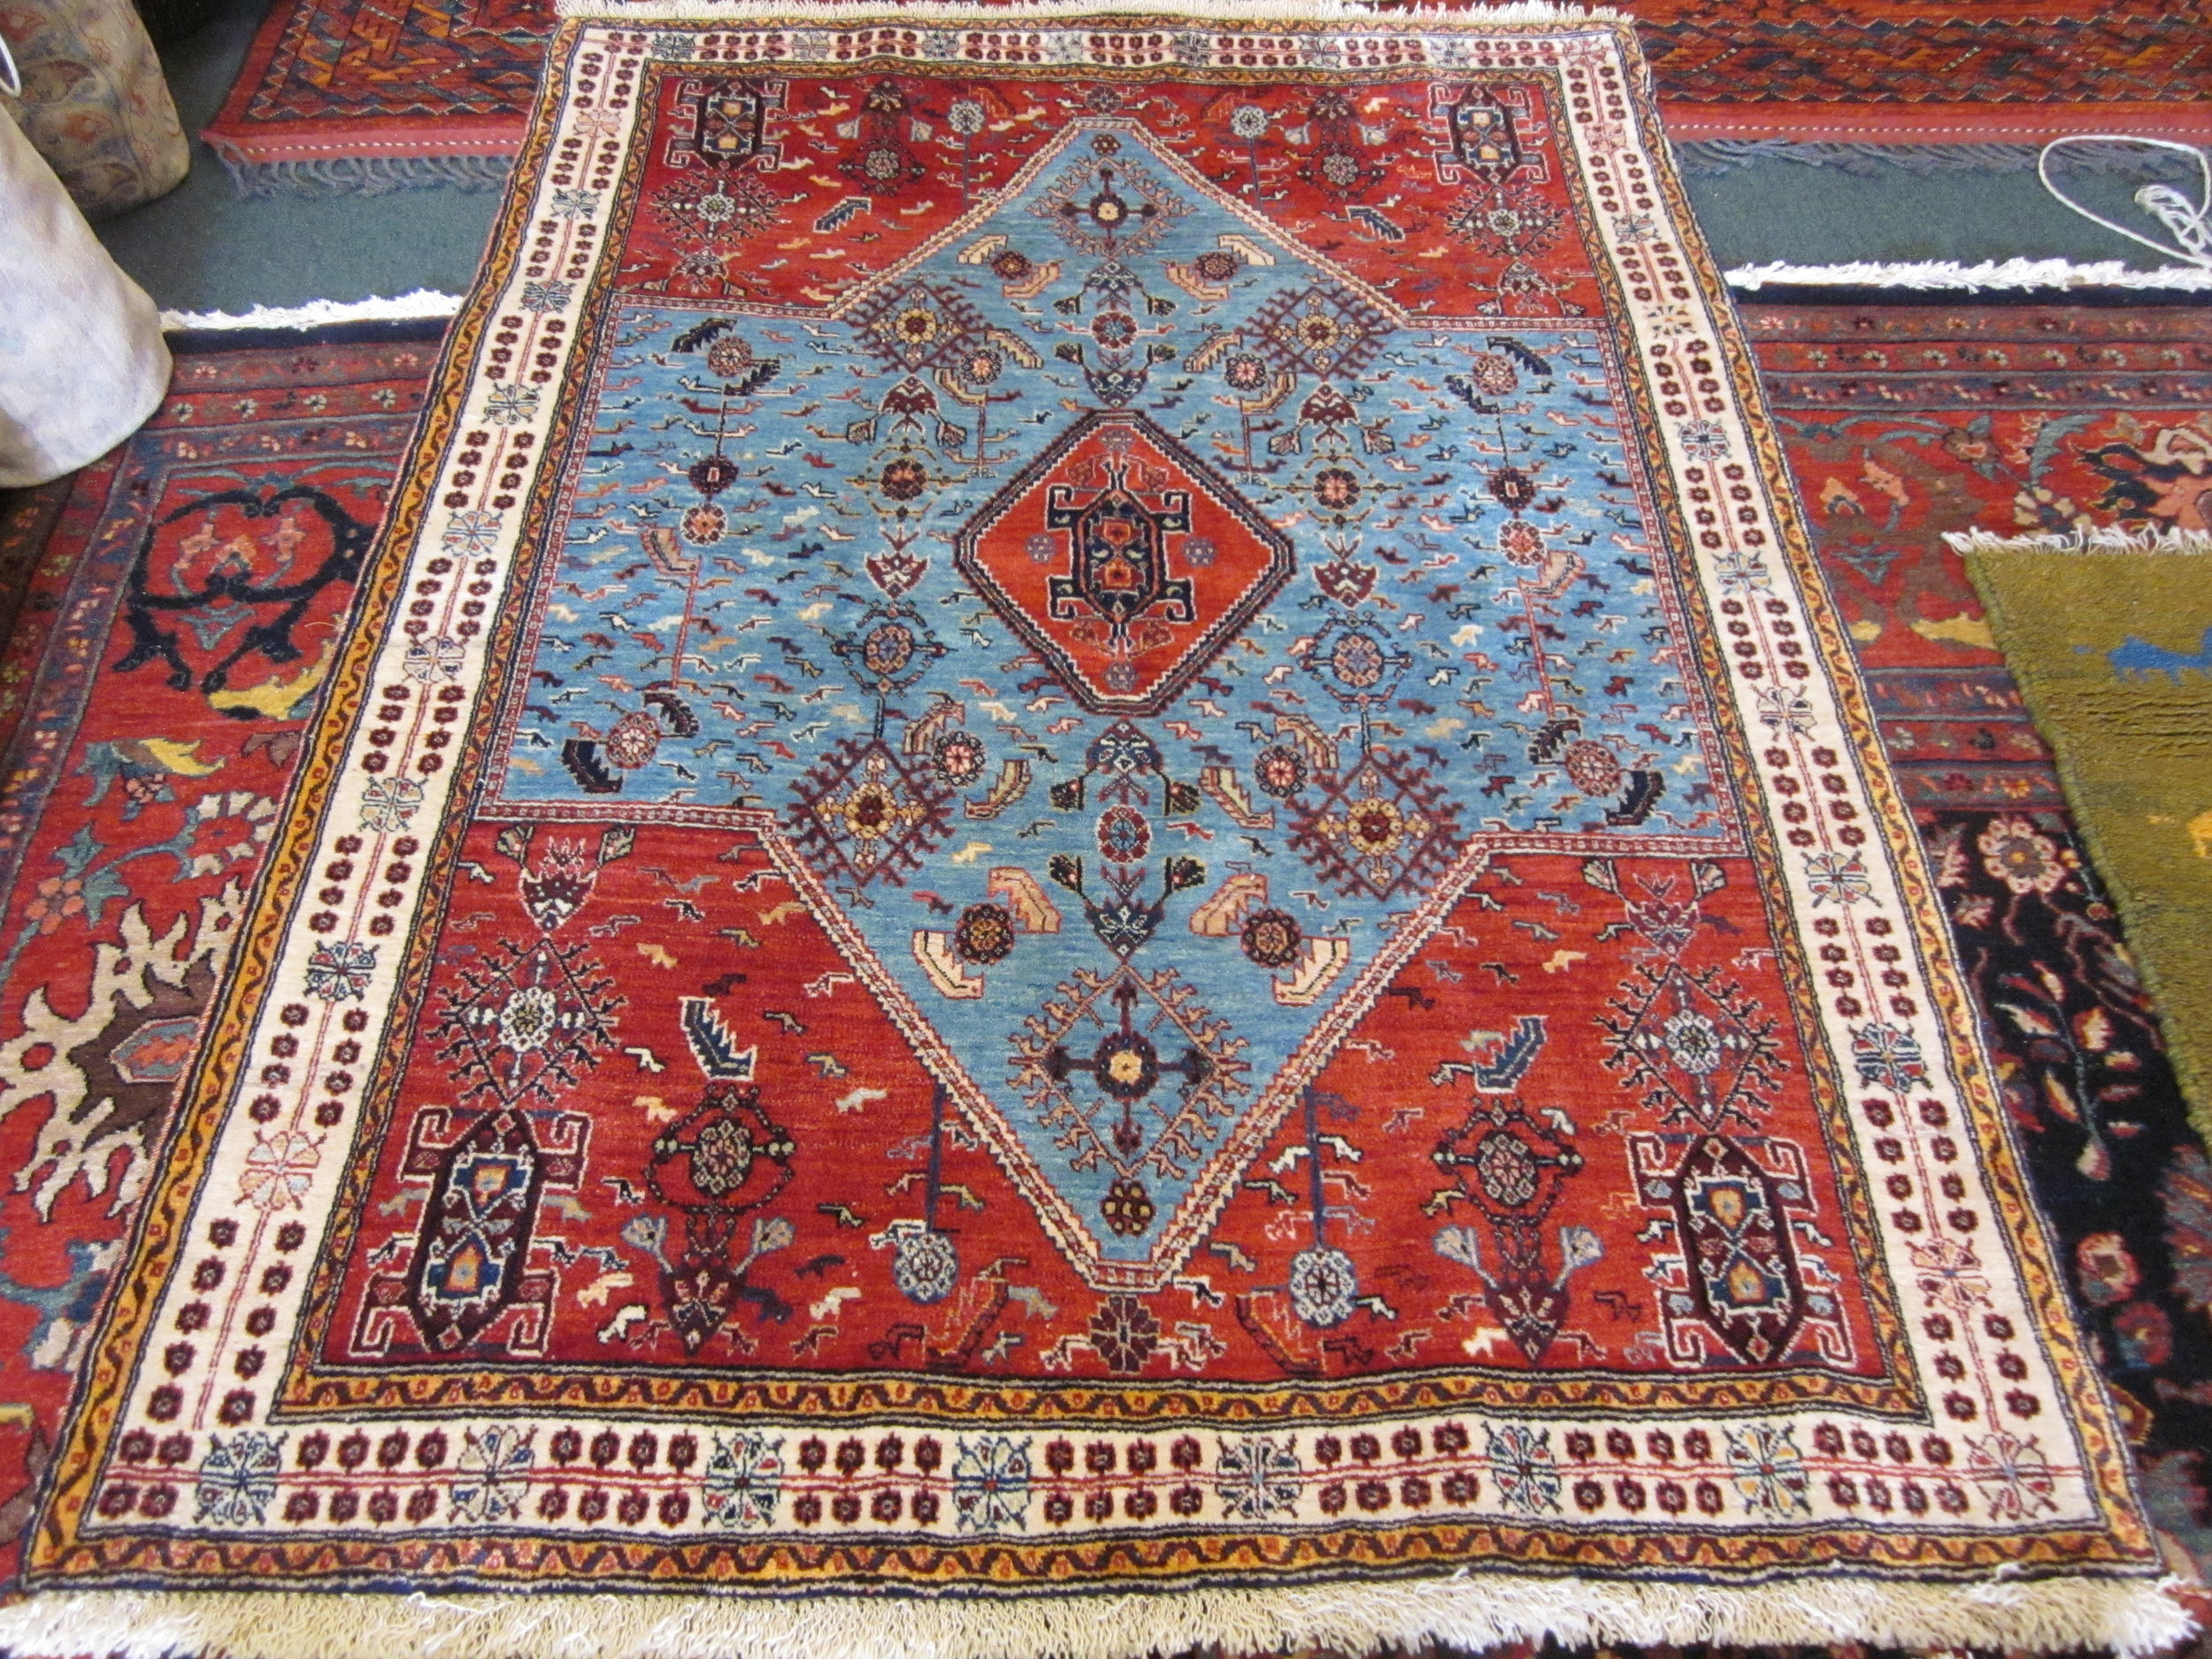 Beautiful 4' x 6' Qashqai rug. Sold.